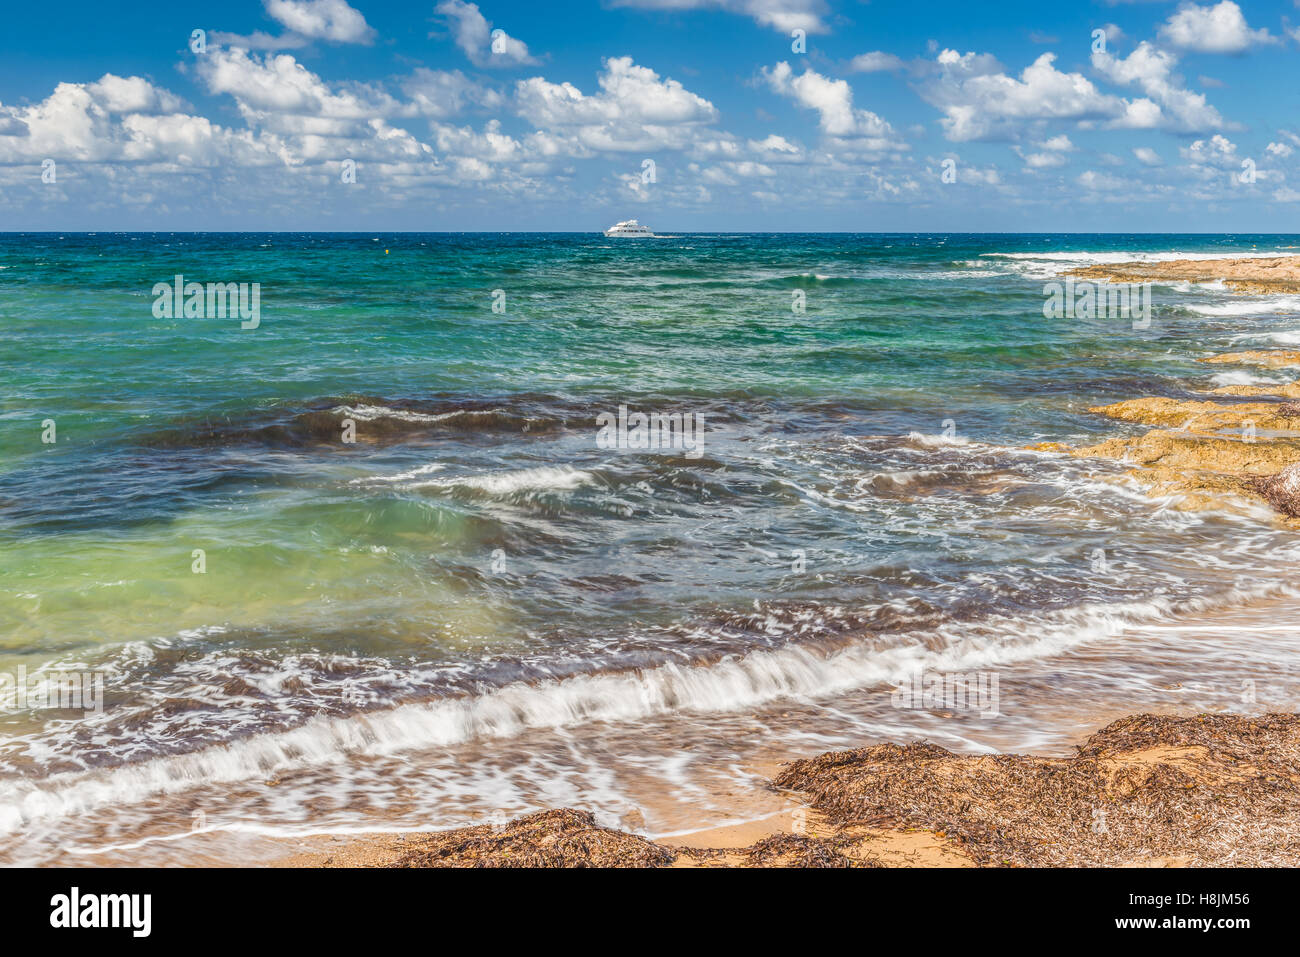 Mediterranean Sea view.  This picture was taken in the city of Paphos in Cyprus. - Stock Image